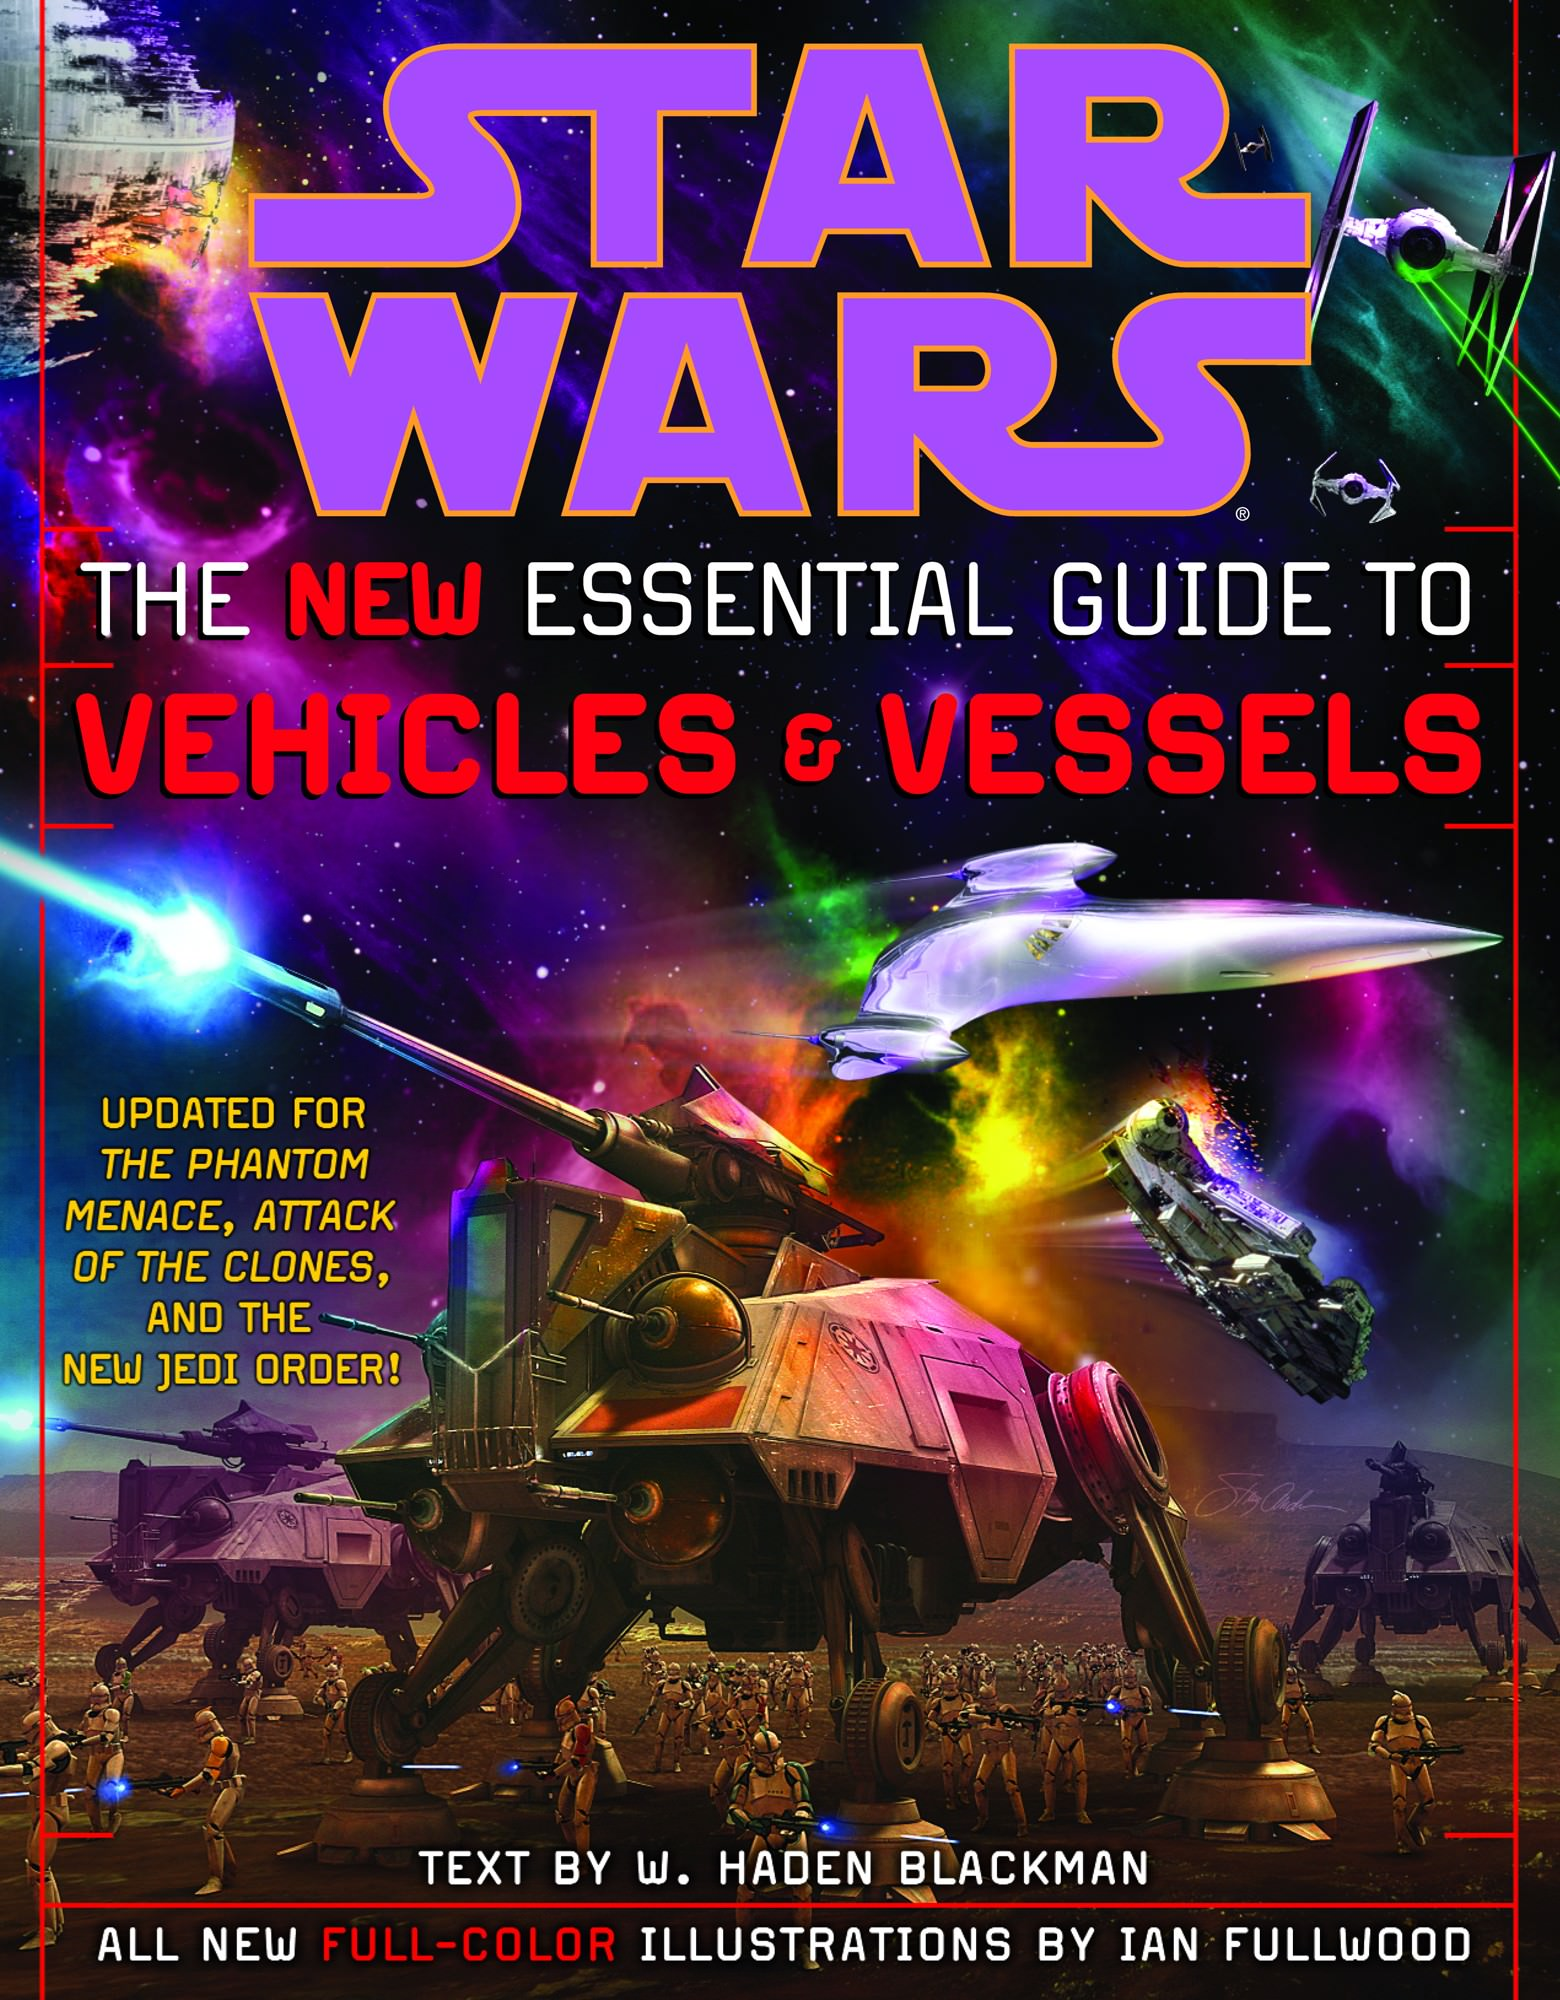 Star Wars: The New Essential Guide to Vehicles and Vessels